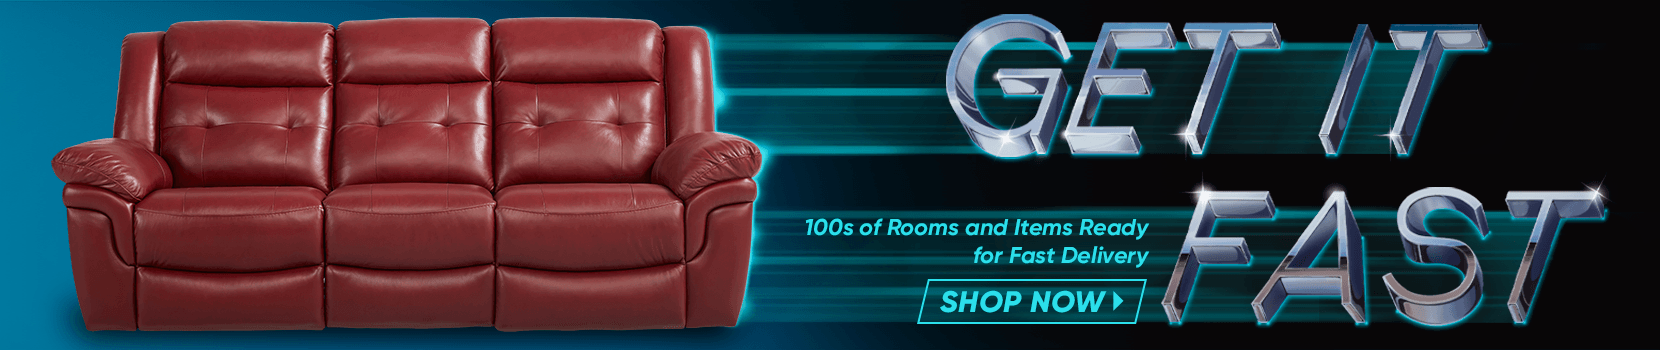 get it fast. 100s of rooms and items for fast delivery. shop now